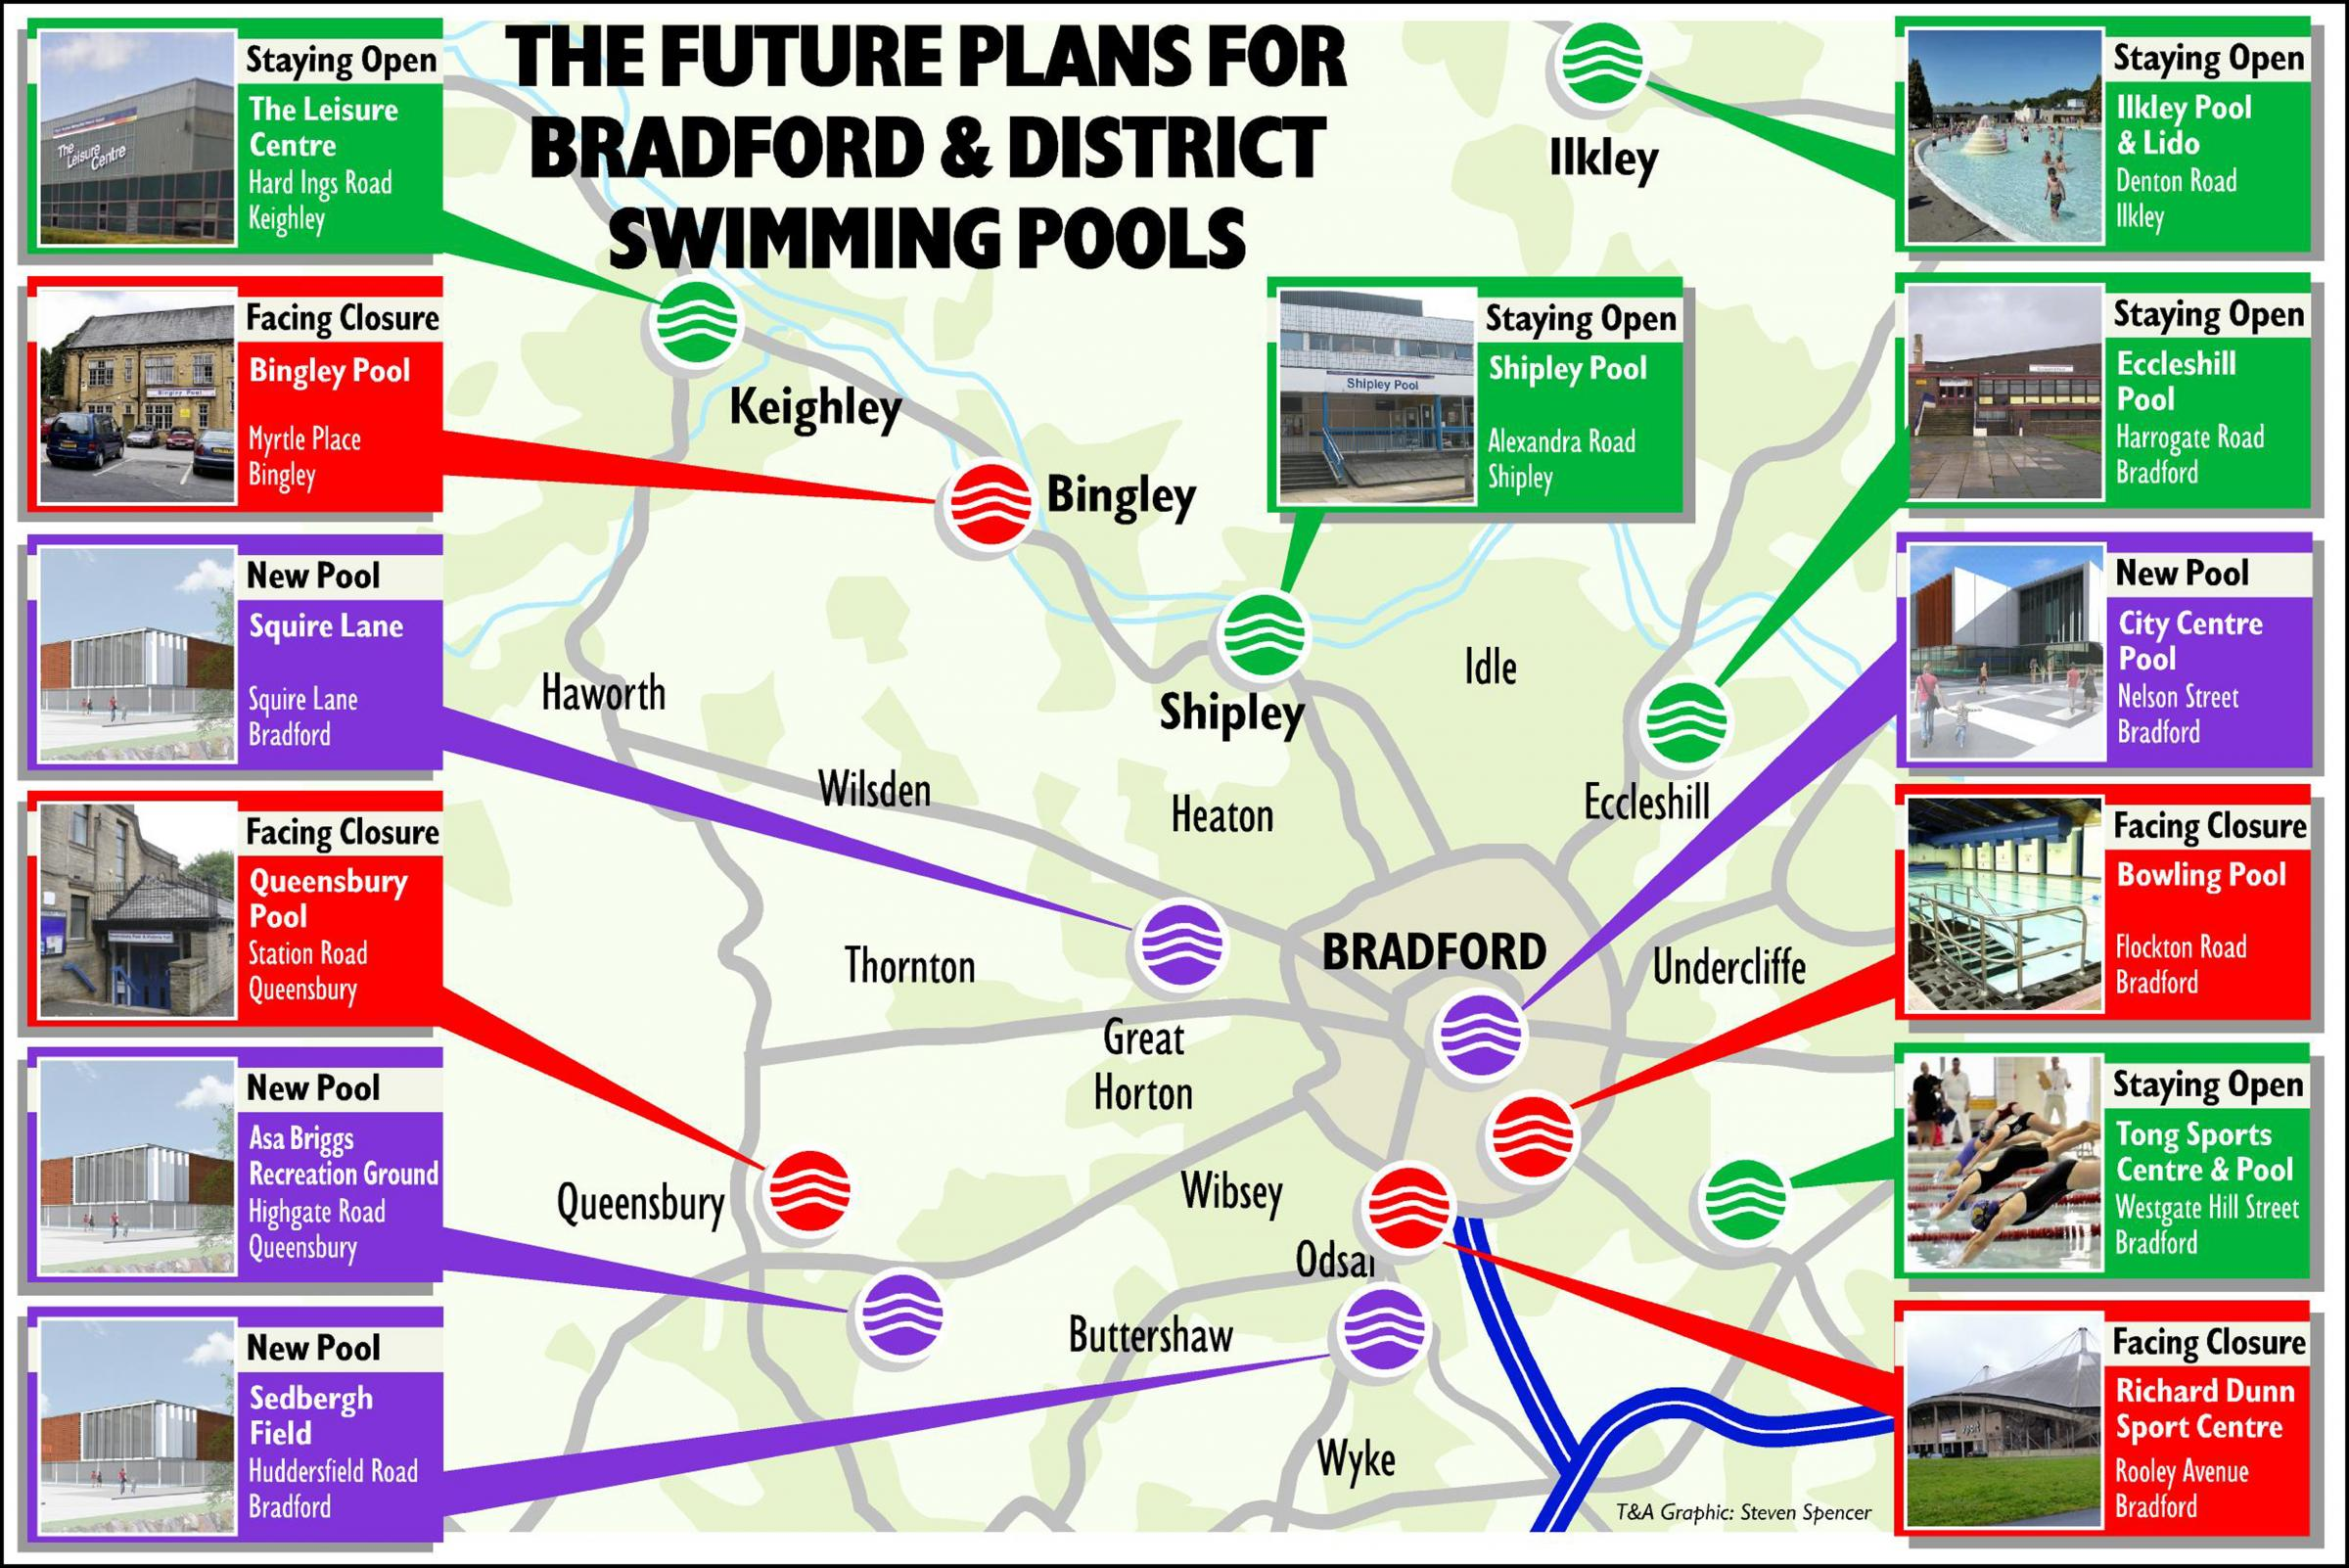 Bradford Telegraph and Argus: Pool closures